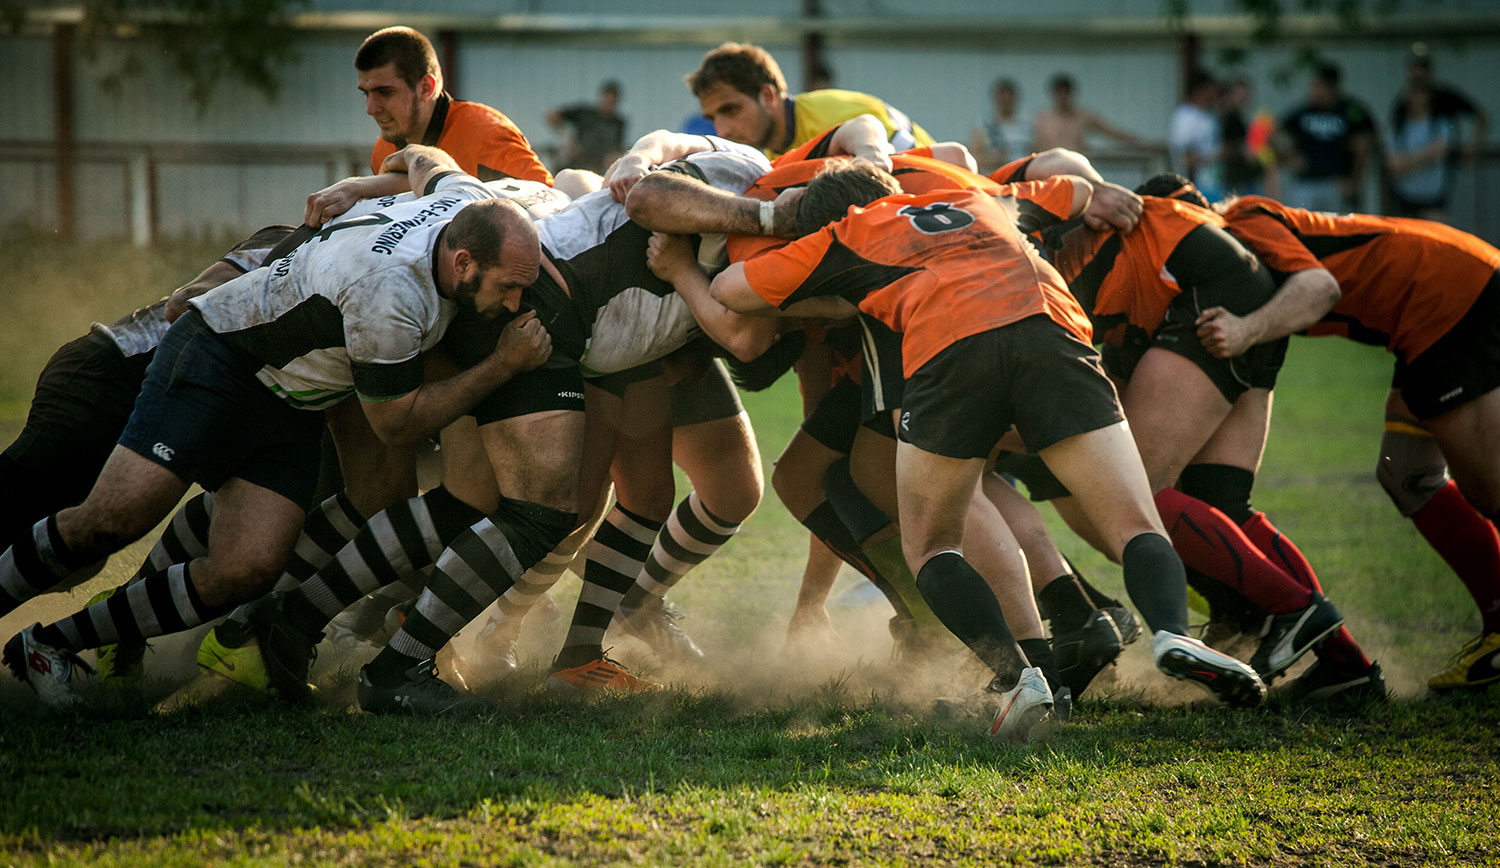 4-sports-photographer-bike-motorbike-climbing-racing-football-rugby-england-scotland-uk.jpg